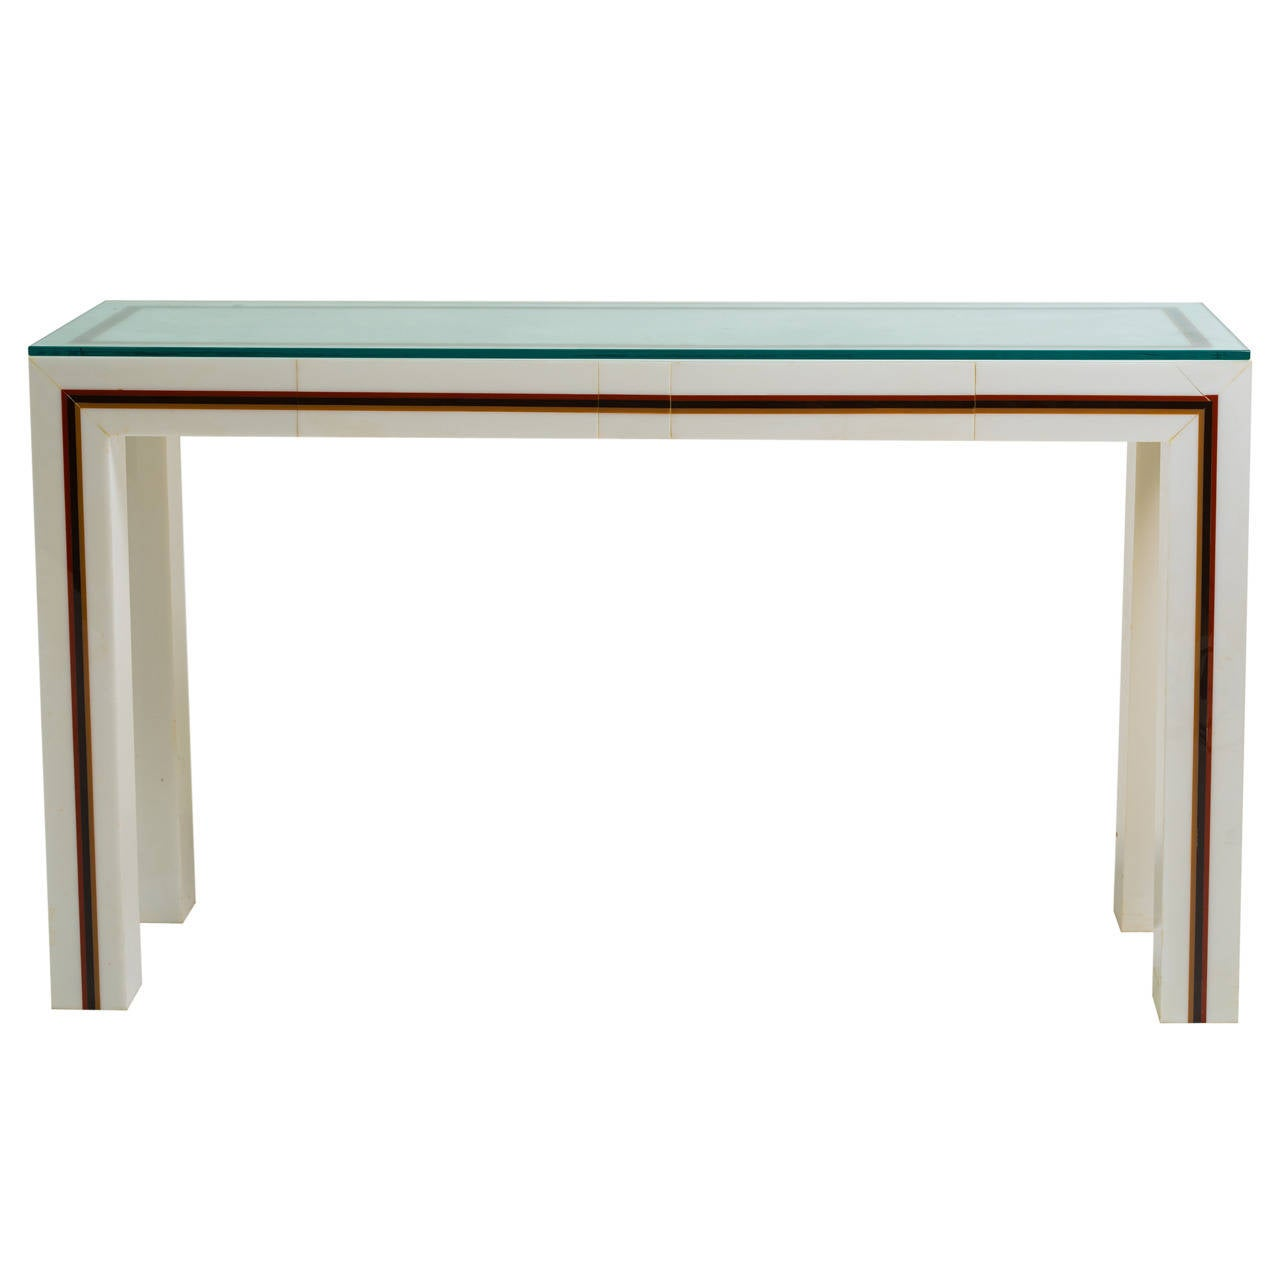 Custom made plastic console table for sale at 1stdibs custom made plastic console table 1 geotapseo Choice Image